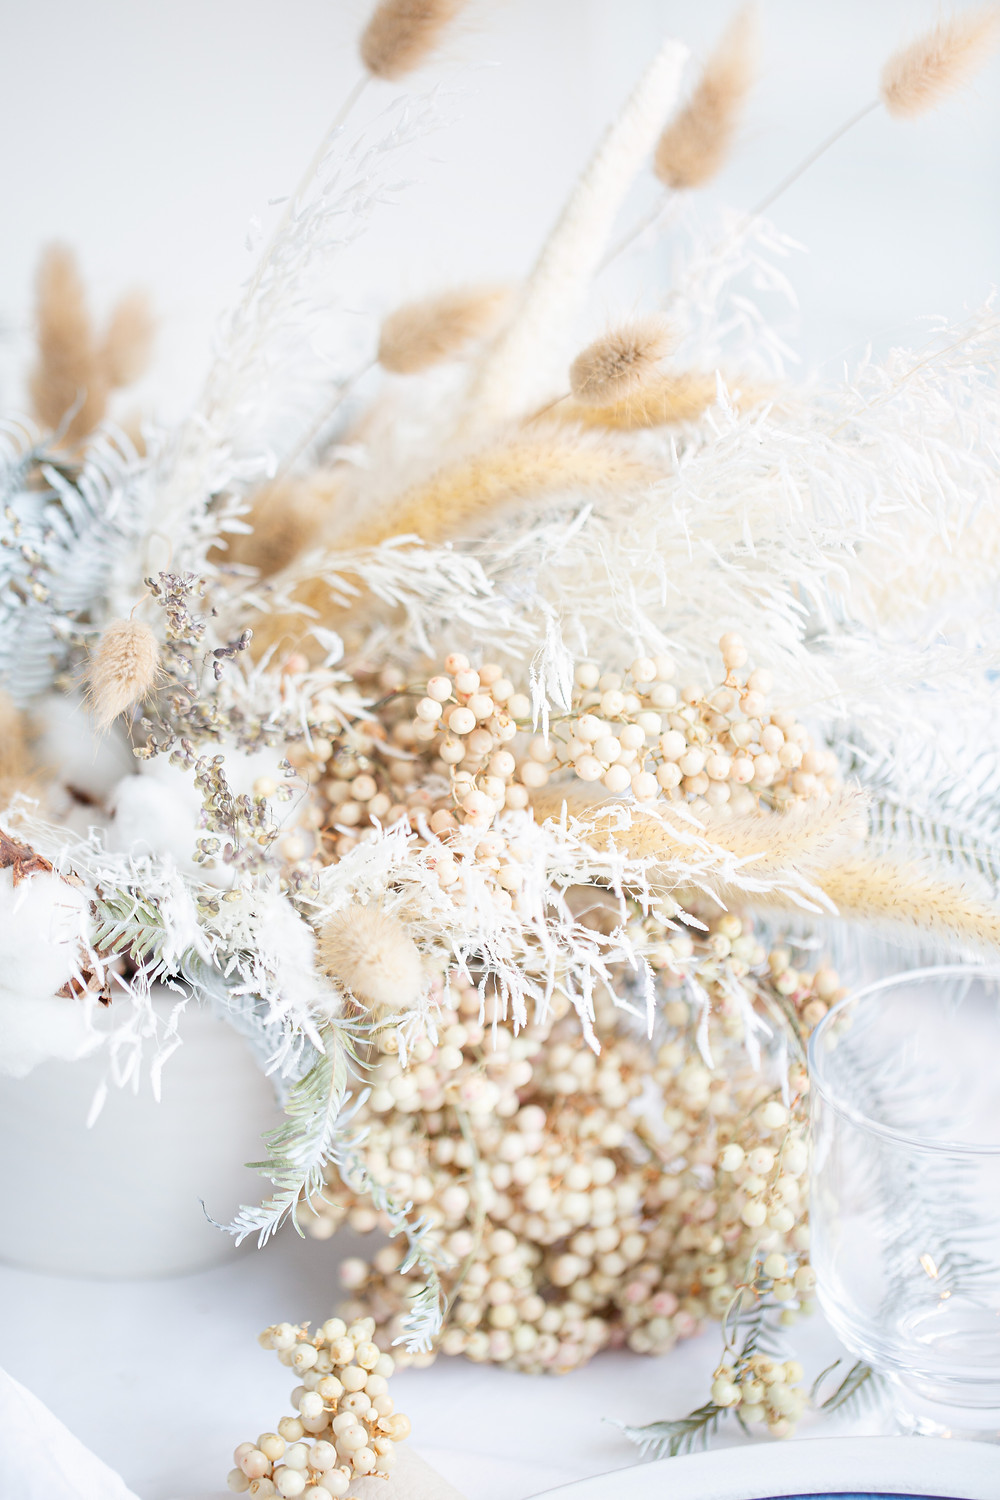 natural centerpiece created with dried bunny tails, pepper berries, cotton  and wintery dried products